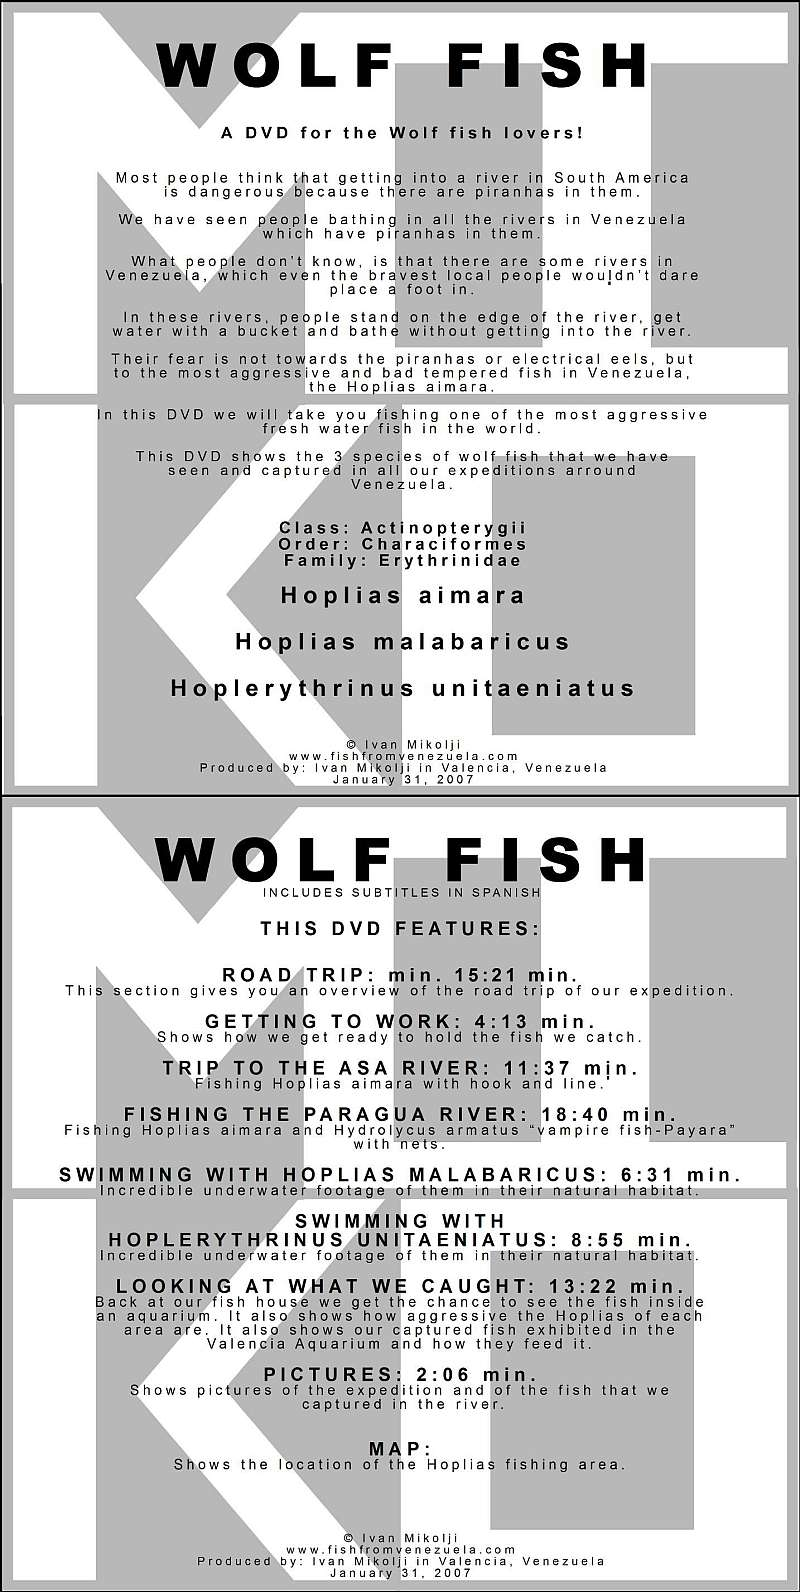 WOLF FISH DVD COVERS